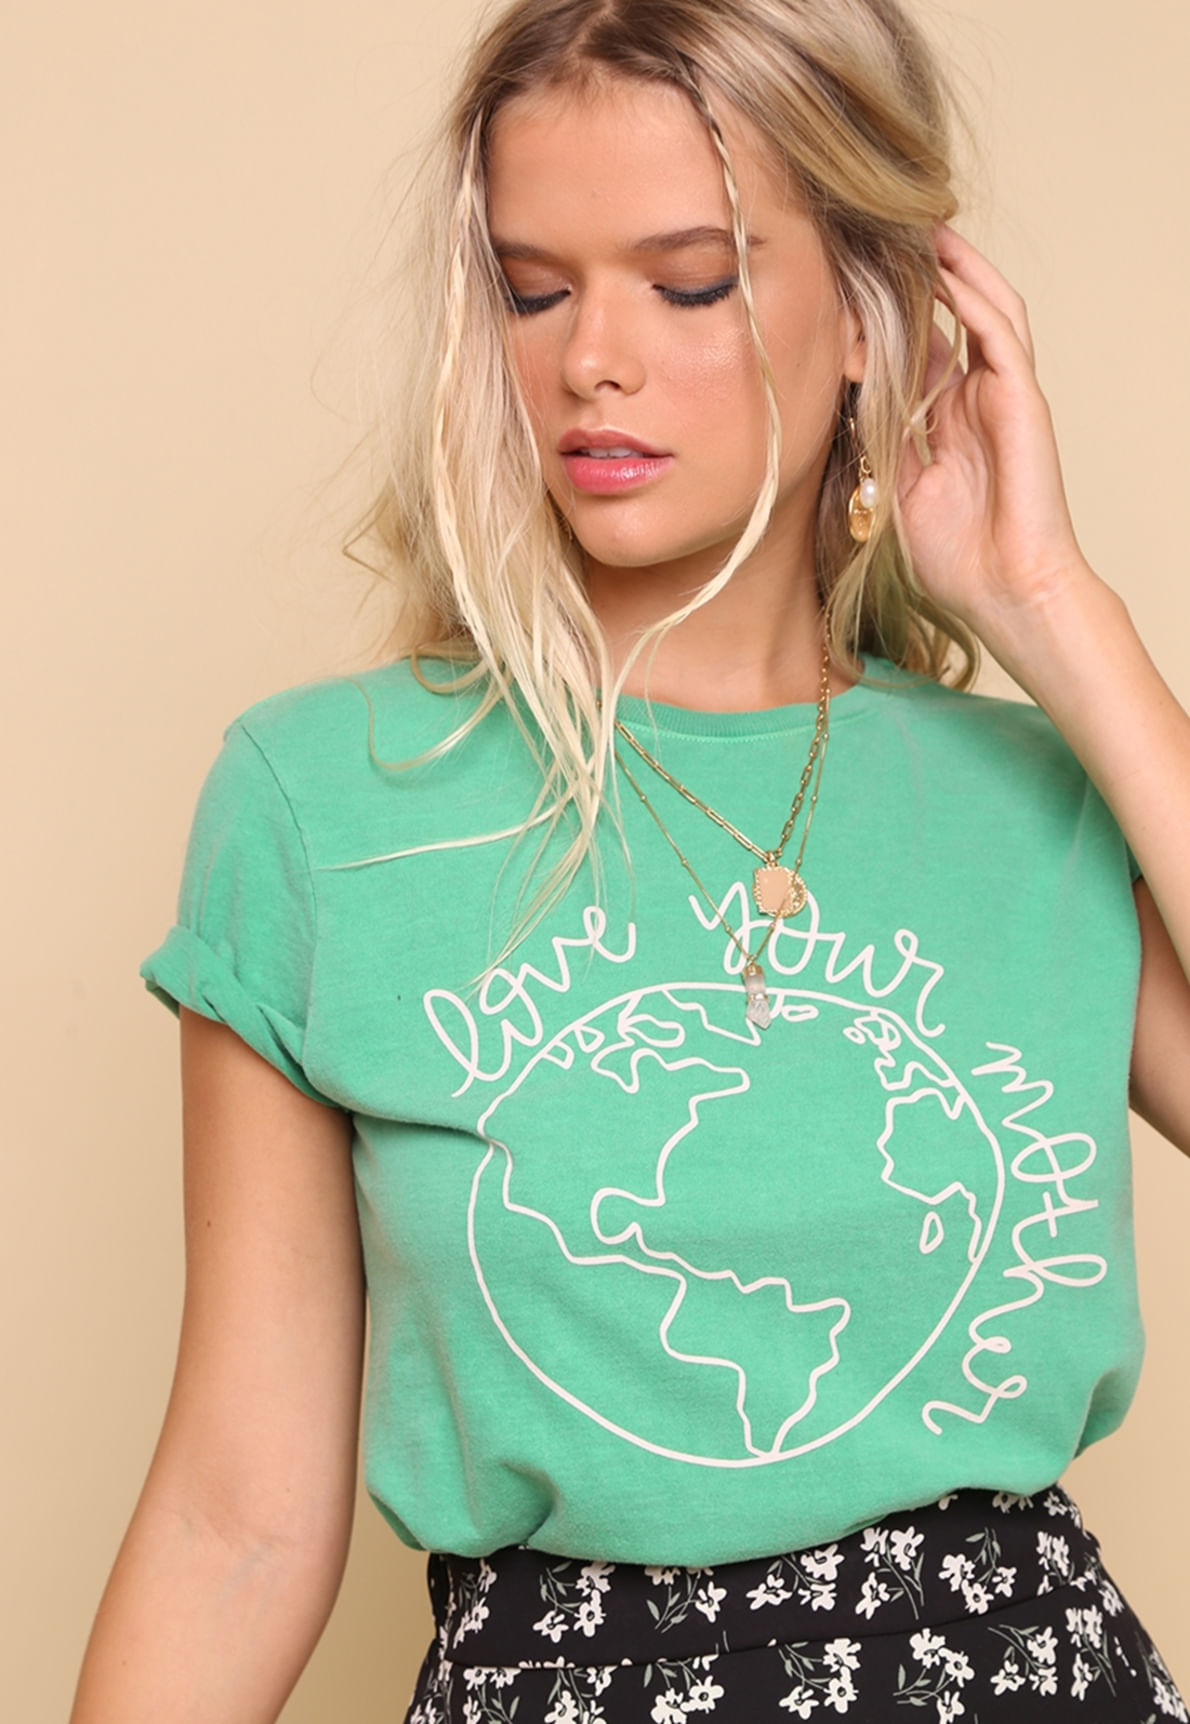 30357-tshirt-mother-earth-mundo-lolita-01